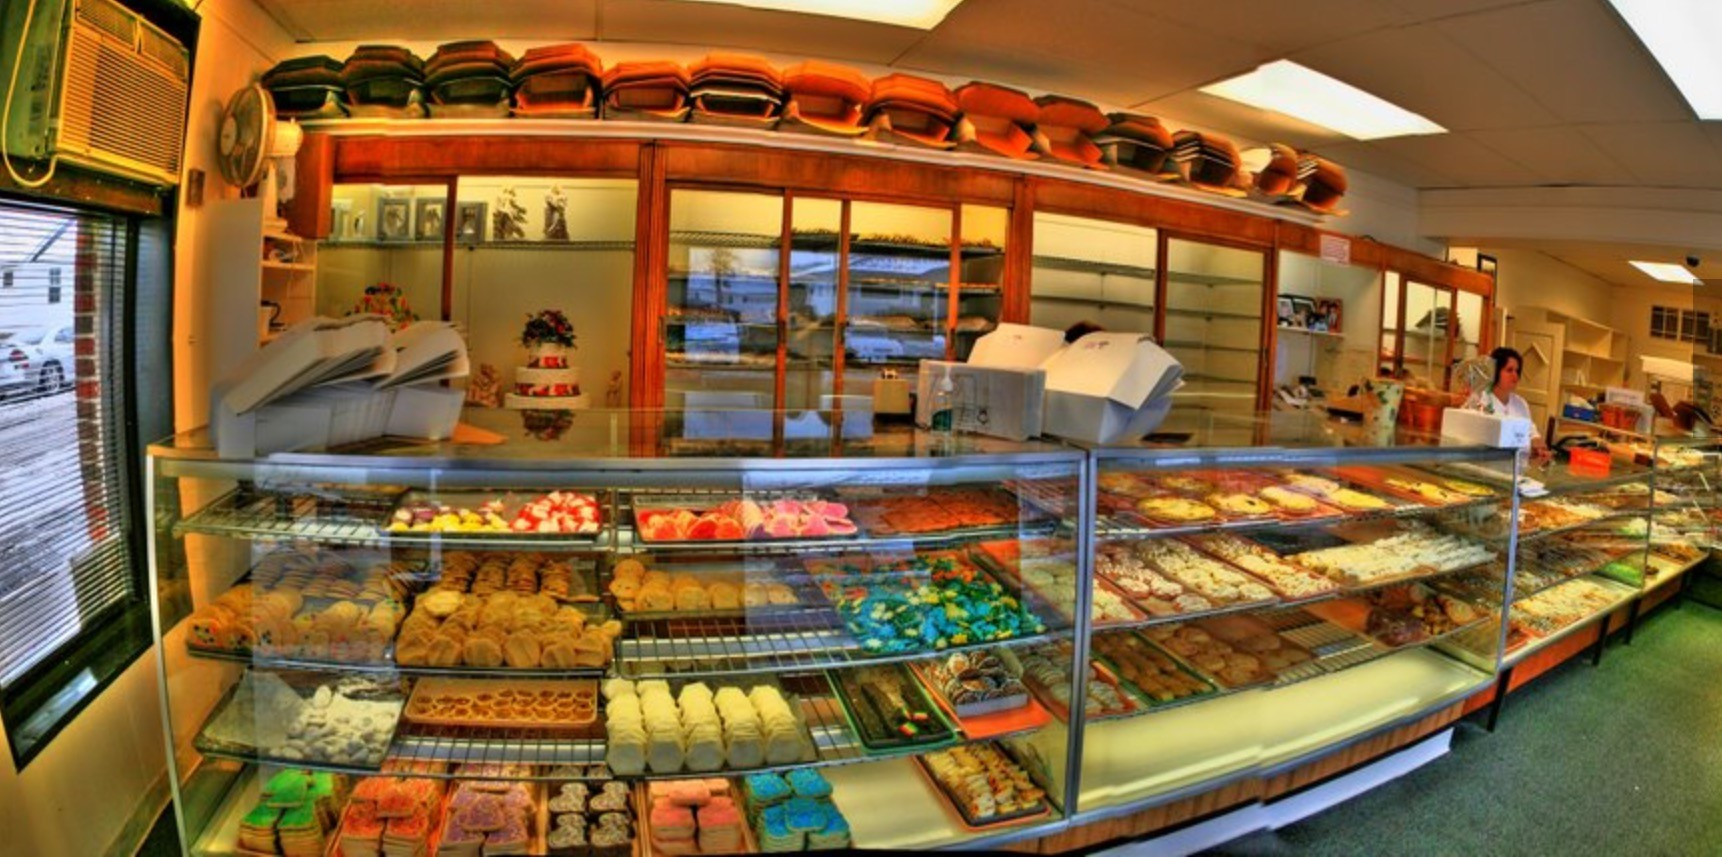 Panorama of the shop taken from the entrance.